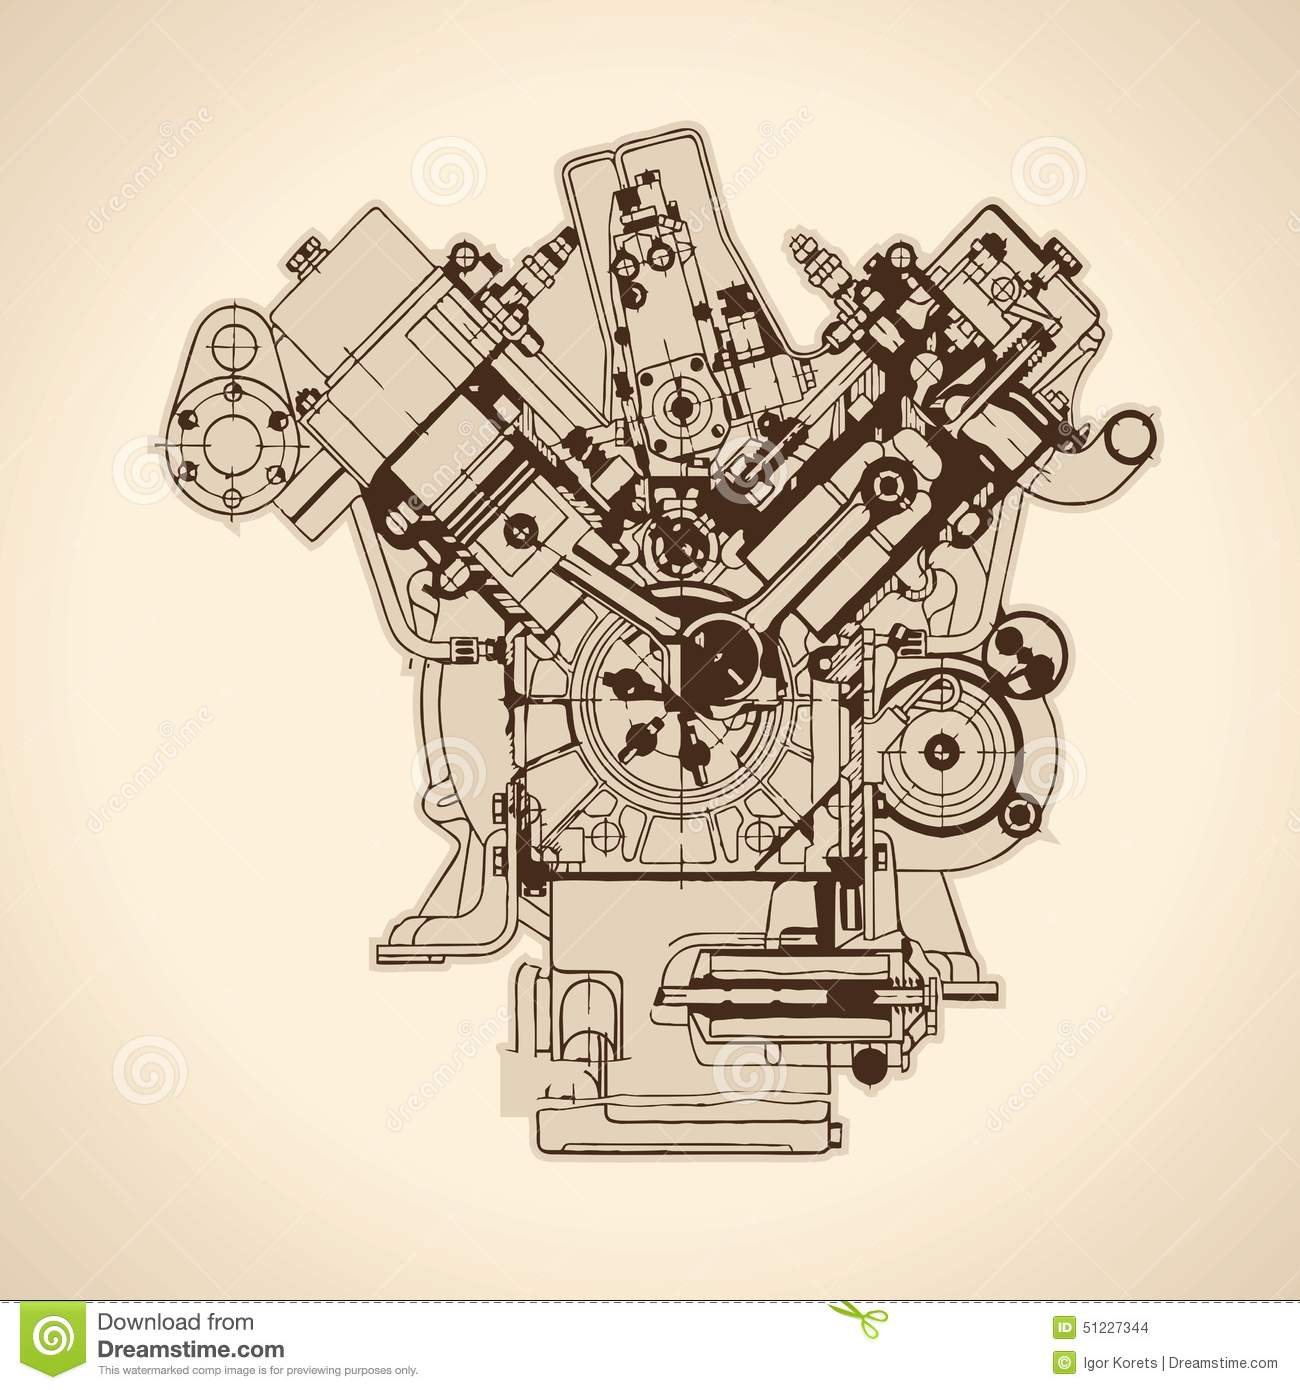 Vintage Engine, Old Picture. Vector Stock Vector - Illustration of